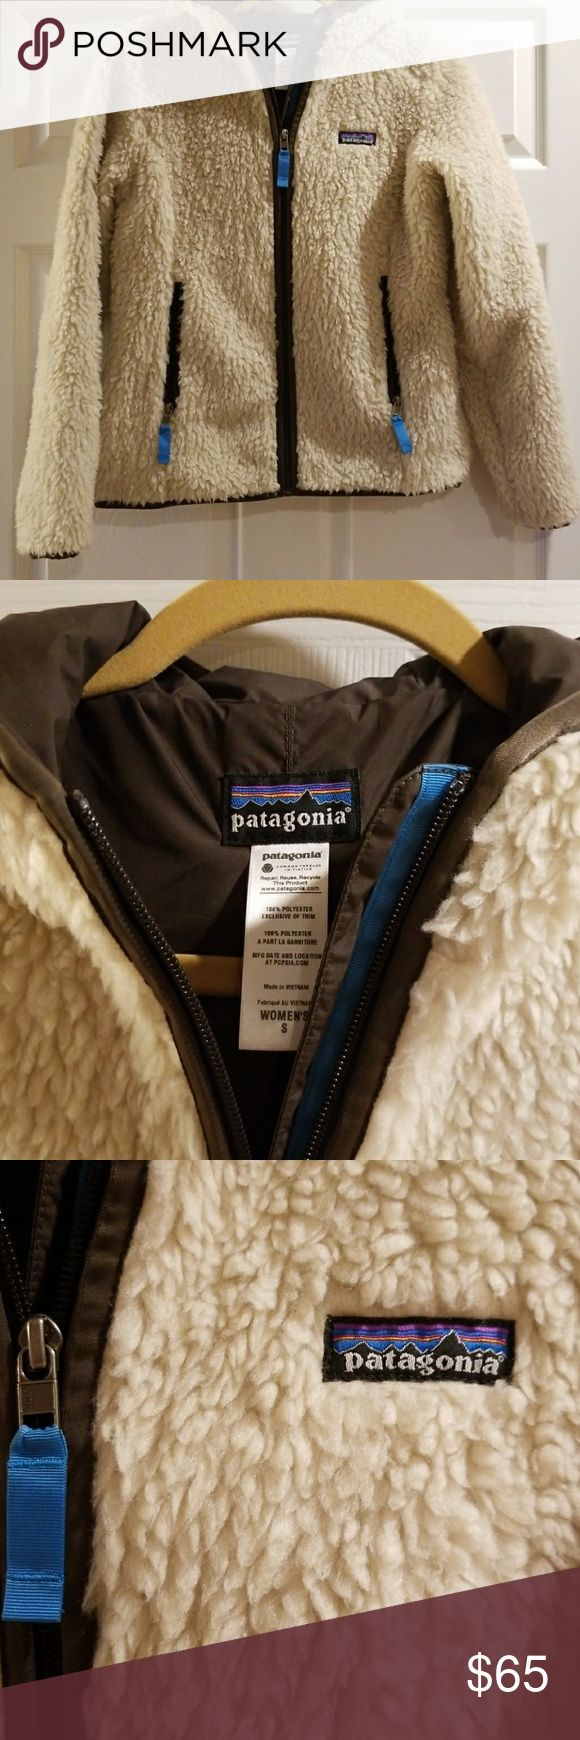 Women's Patagonia jacket Size small women's Patagonia zip up medium weight jacket cream fuzzy outside lined in dark brown. I love this jacket but it never really gets cold enough here for me to wear it. Patagonia Jackets & Coats